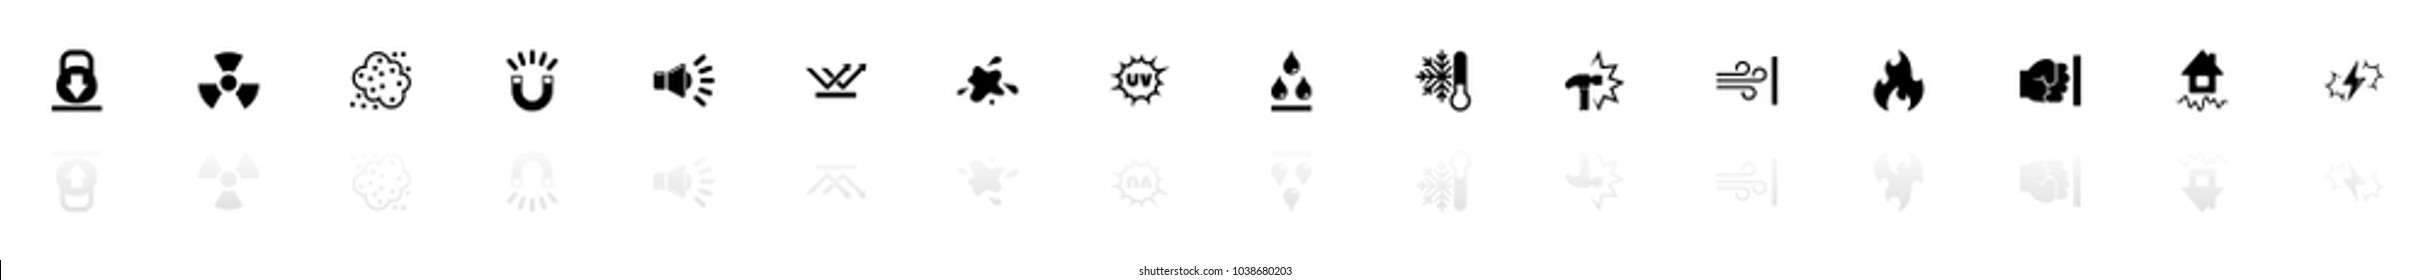 Influence icons. Flat Simple Icon - Black Illustration on White Background with mirror Shadow.